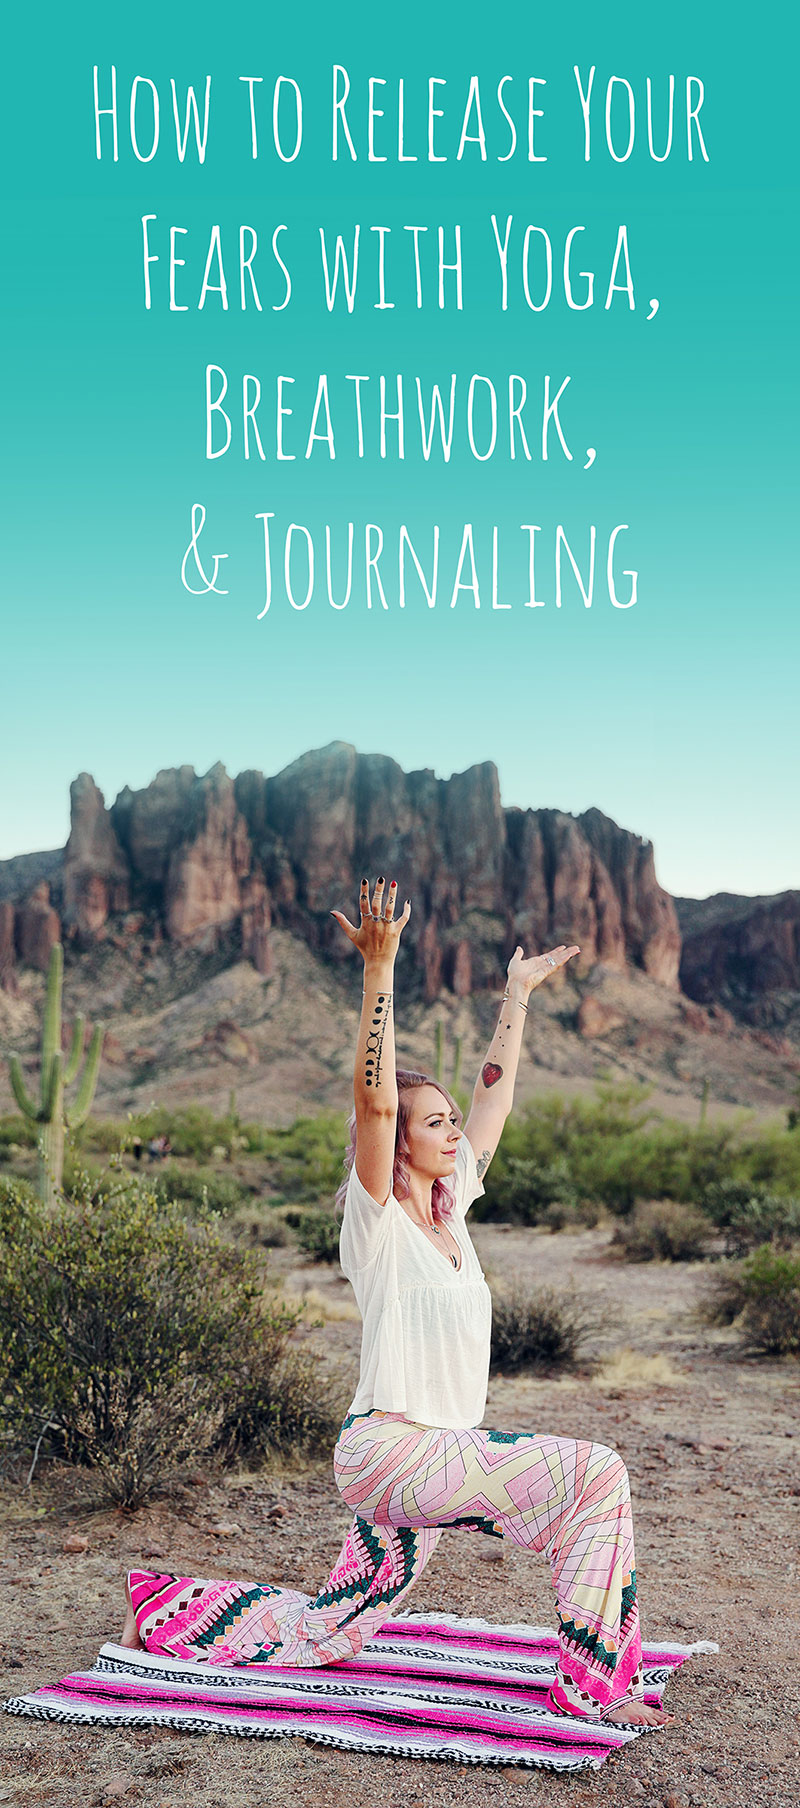 Pic2-Release-your-fears-with-yoga-breathwork-journaling